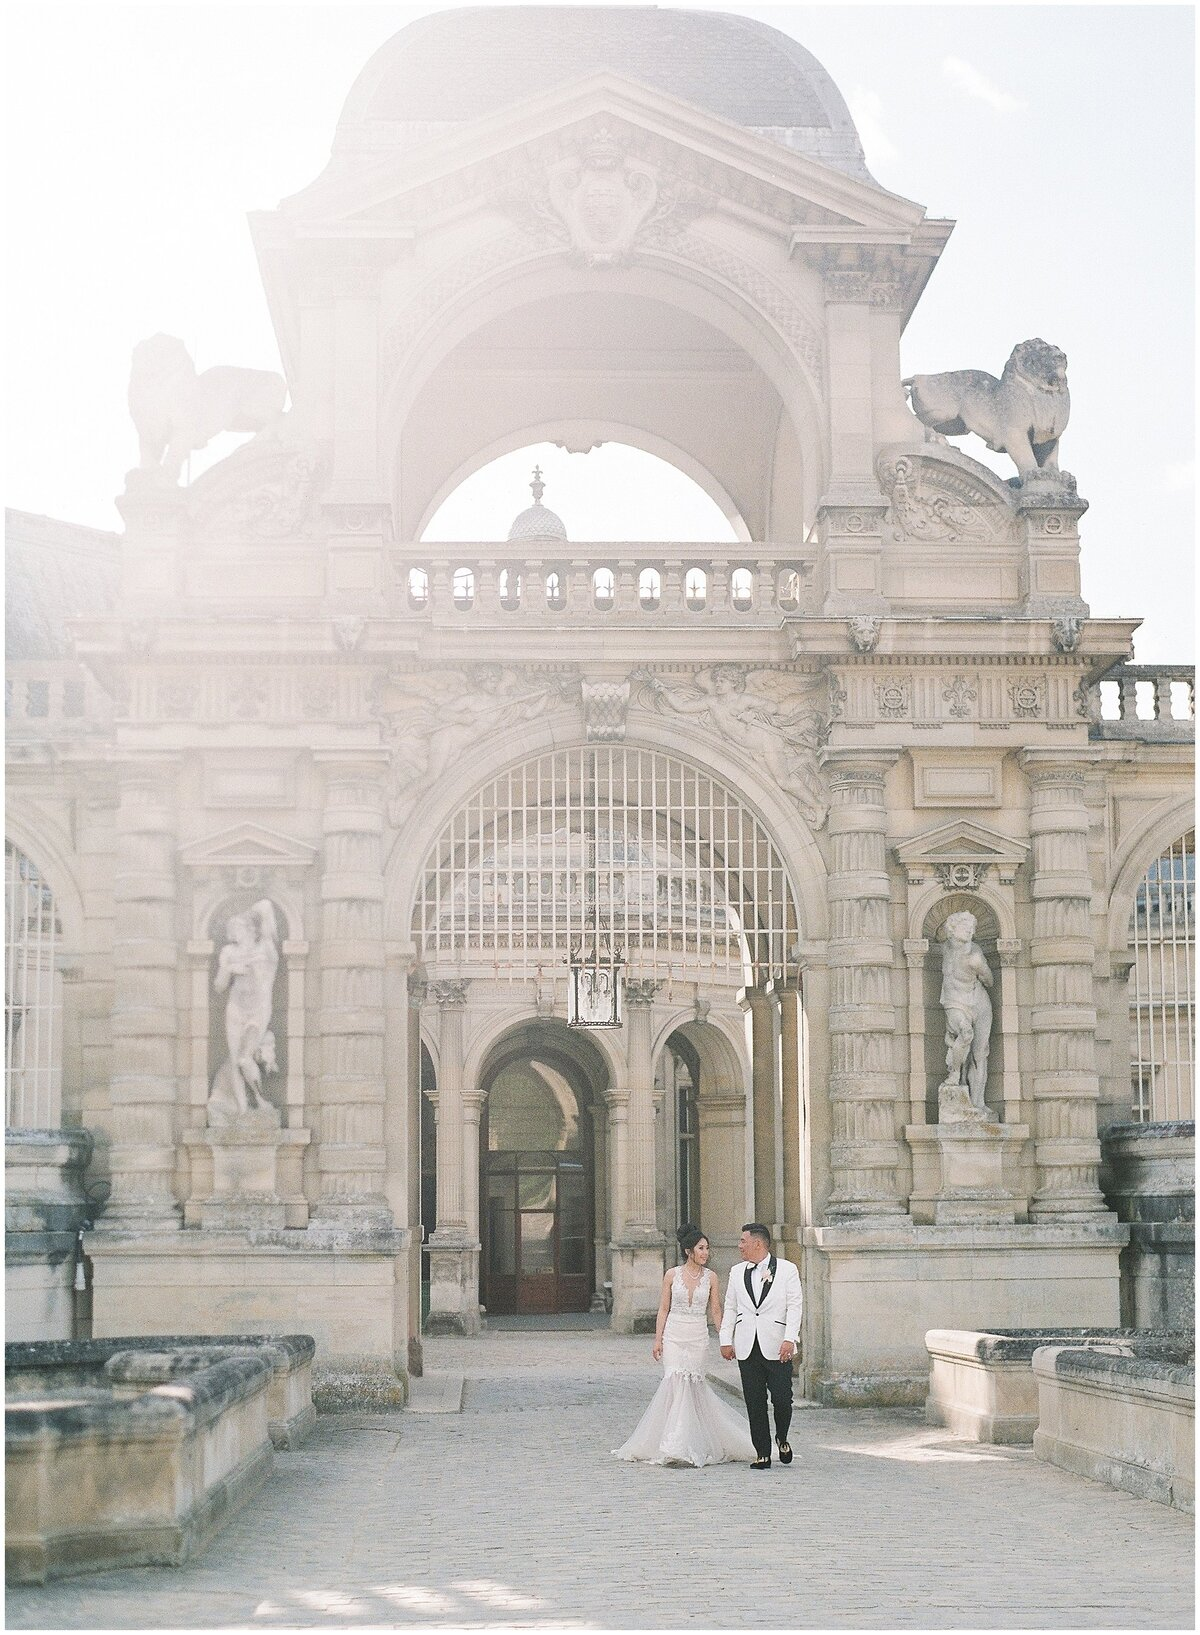 Luxury destination wedding at Chateau de Chantilly in France